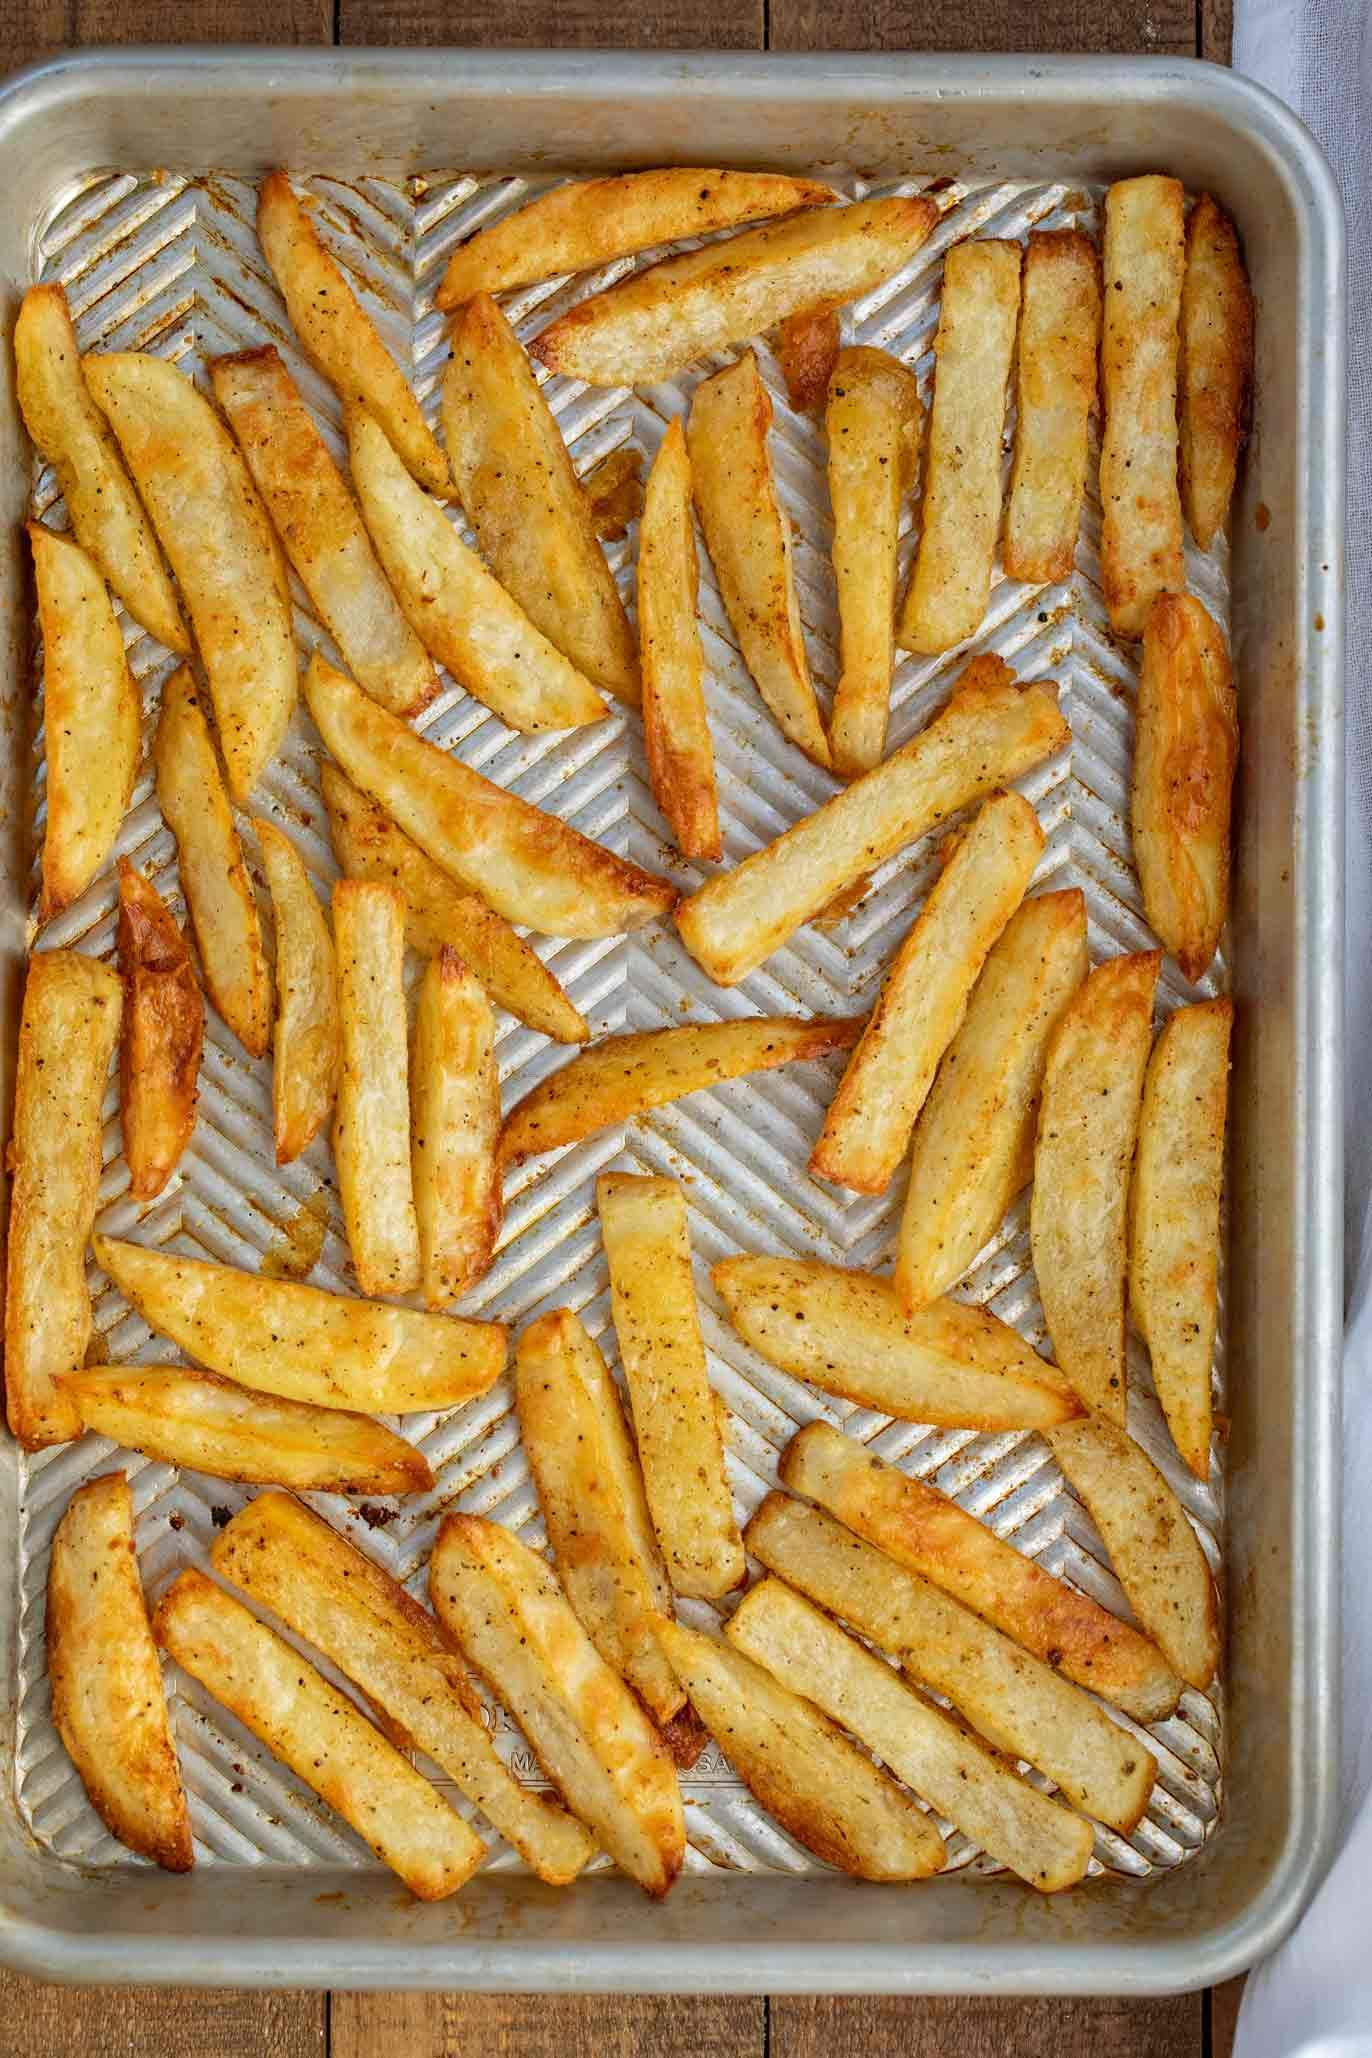 Baked French Fries are russet potatoes lightly coated with olive oil and seasoning and baked until they're warm and crispy, ready in under 45 minutes! #potatoes #fries #frenchfries #homemade #crispy #garlicfries #dinnerthendessert #russetpotatorecipes